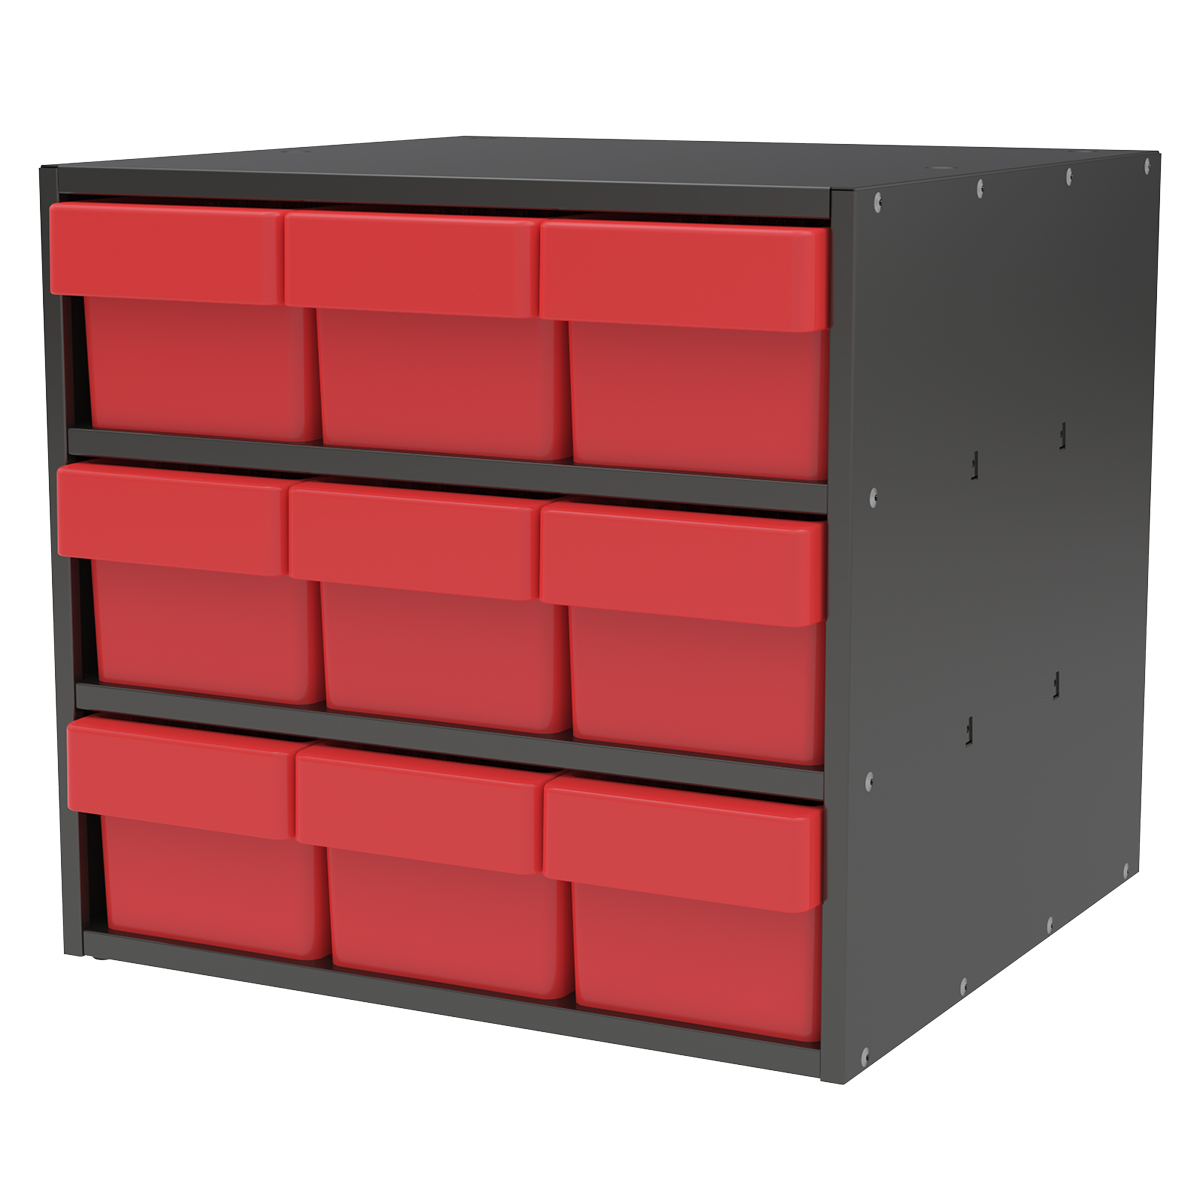 Item DISCONTINUED by Manufacturer.  Modular Cabinet, 18x17x16, 9 Drawers, Gray/Red (AD1817C68RED).  This item sold in carton quantities of 1.